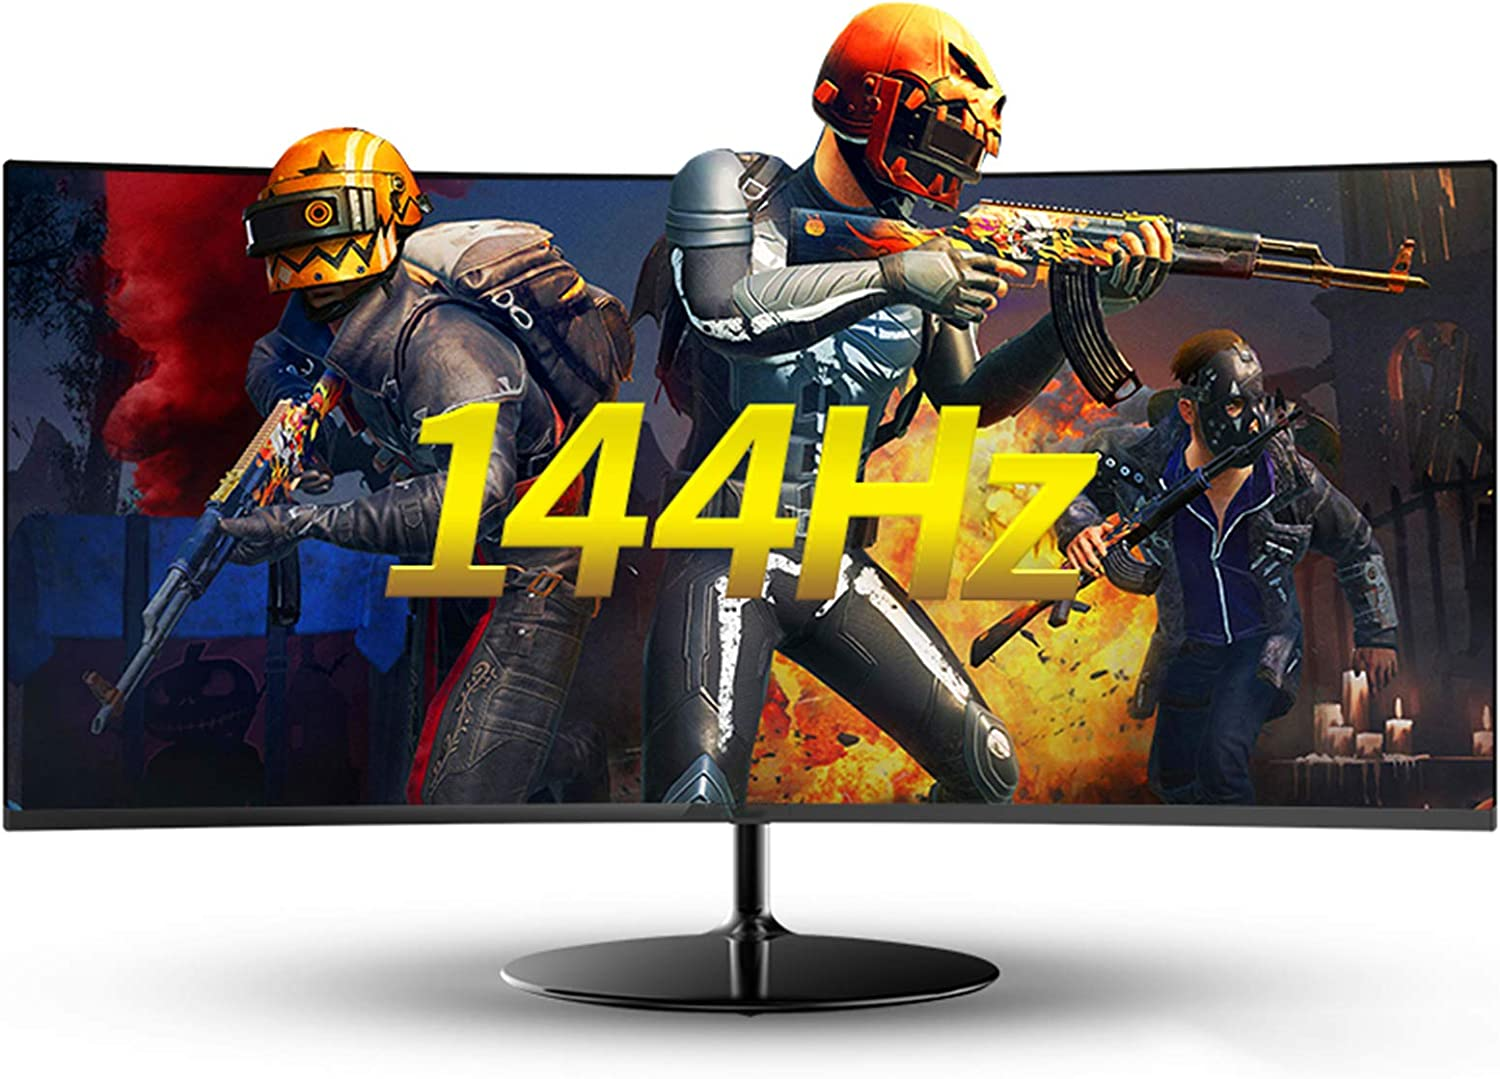 ZZYH 34 Inch Full HD (34401440) Monitor, 144Hz, 1ms, 2HDMI, 2DP, Eye Protection Borderless VA Curved Screen, Multifunctional Lifting Pitching Adjustment Bracket